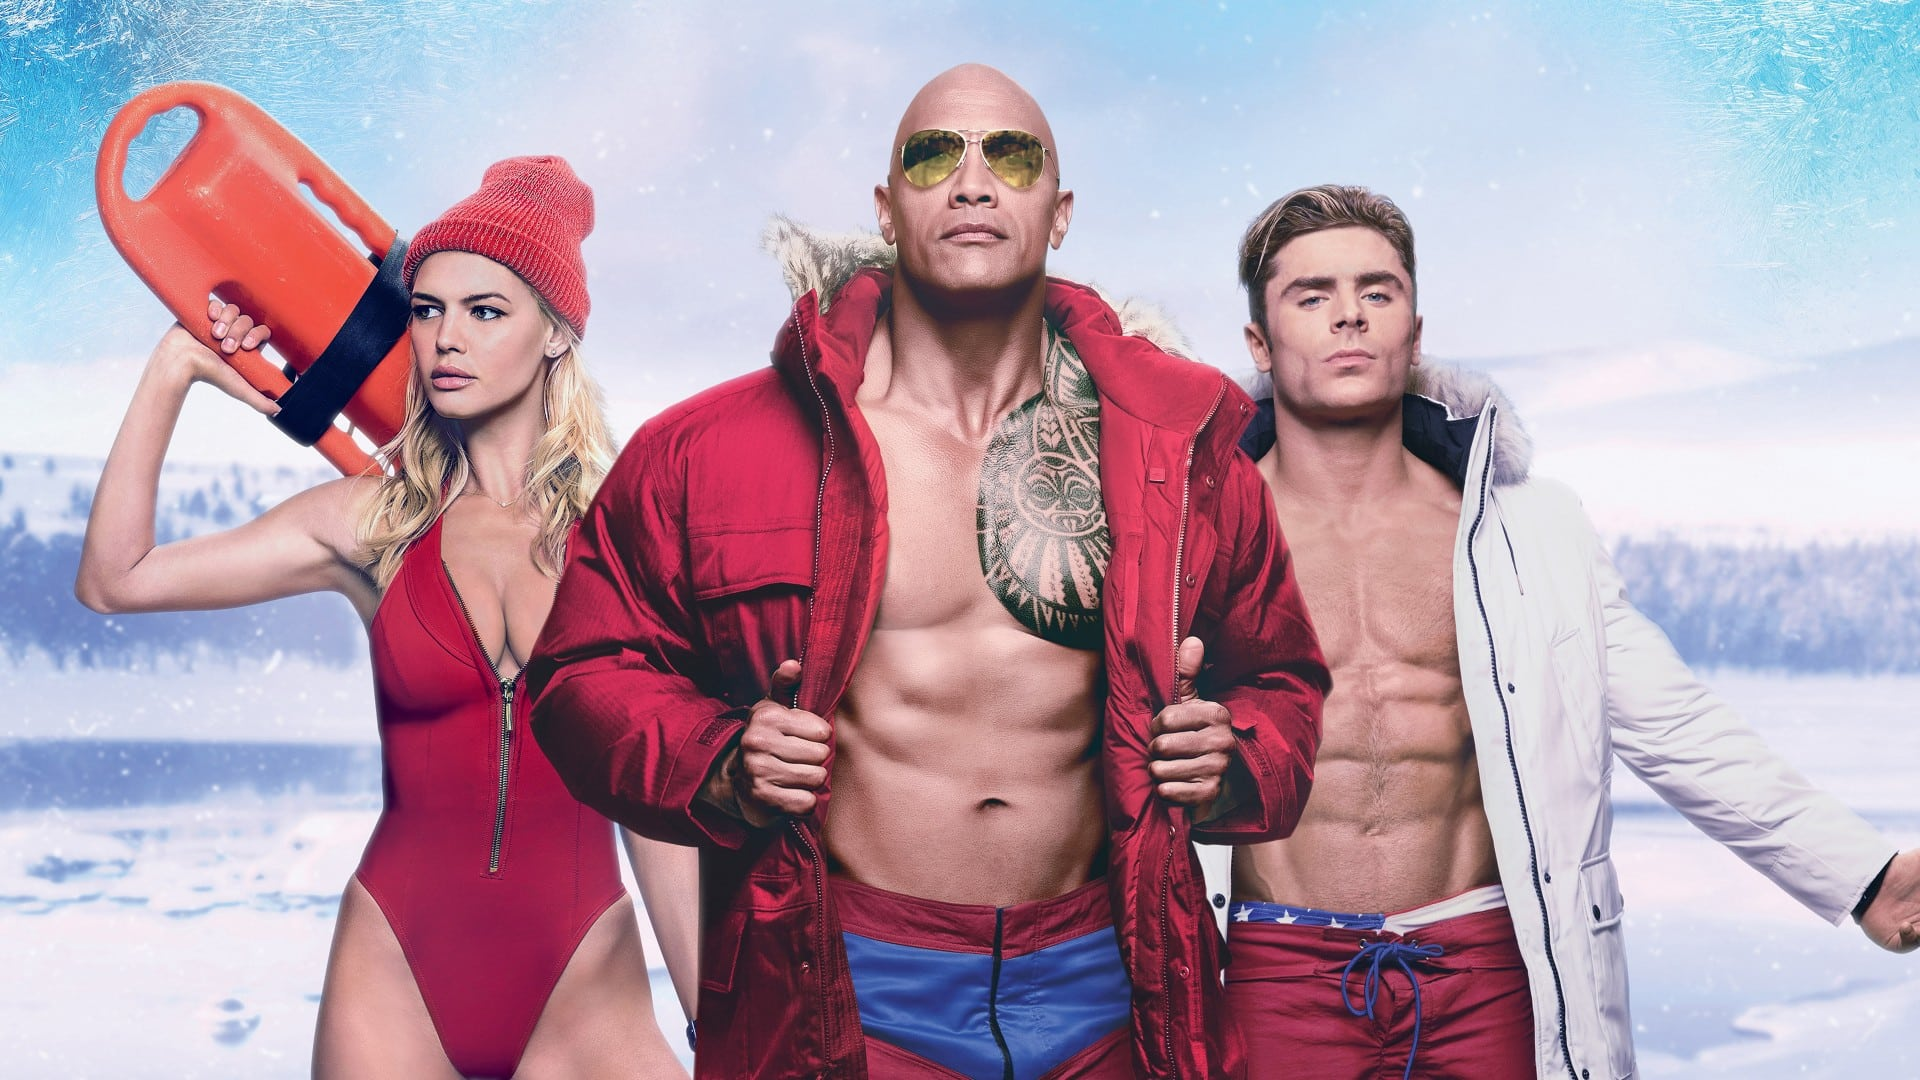 baywatch trailer zdroj: hdwallpapers.in